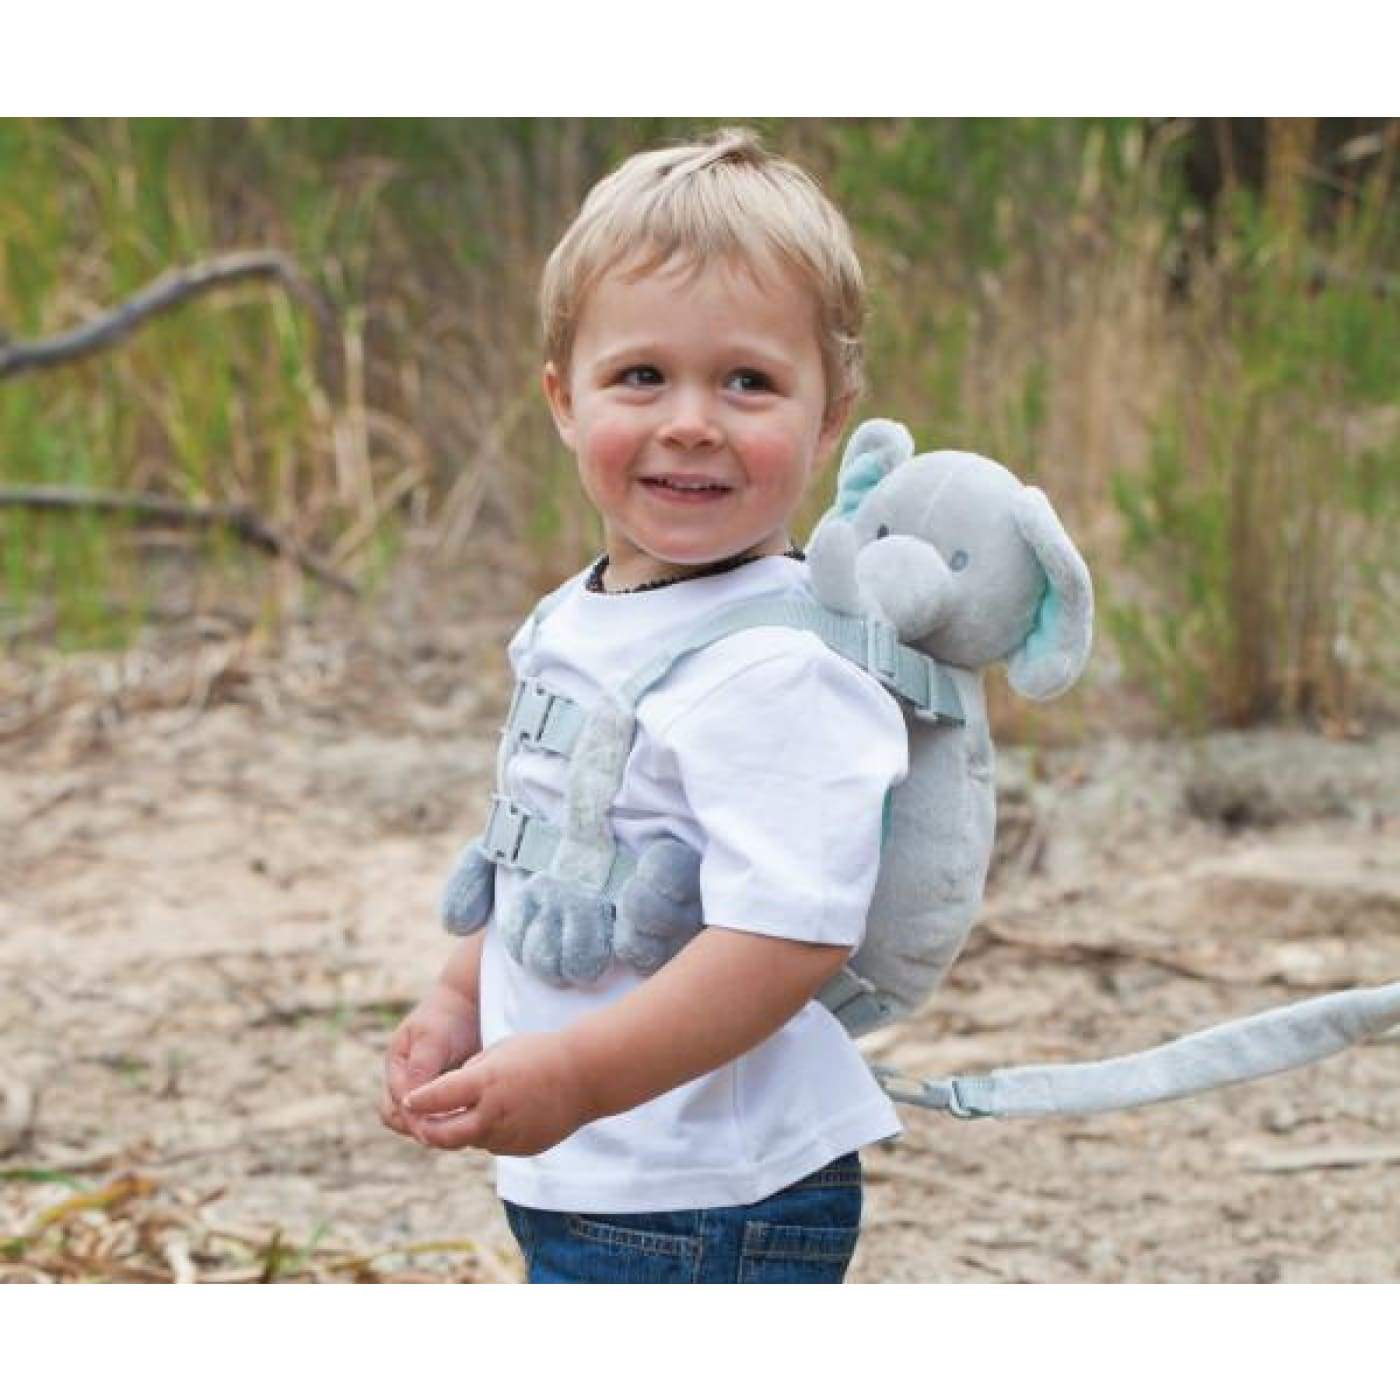 Playette 2 in 1 Harness Buddy - Liam Giraffe - ON THE GO - SAFETY HARNESSES